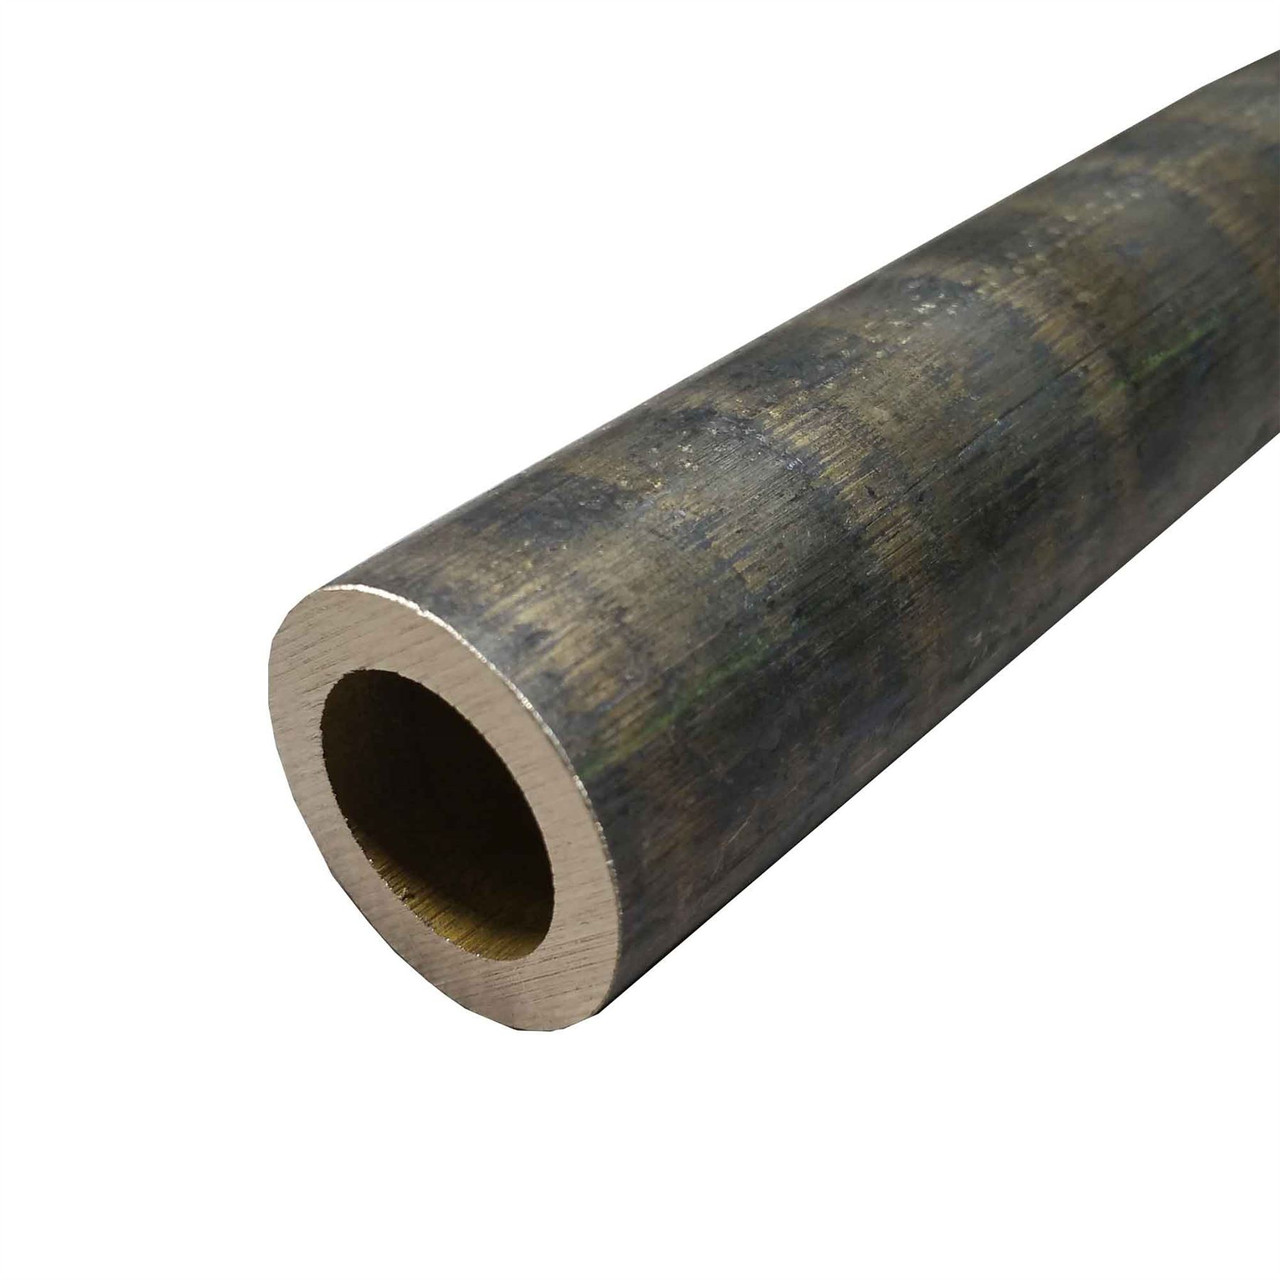 """C954 Bronze Hollow Round Bar, 1.5"""" ID, 3.5"""" OD, 13 inches long"""